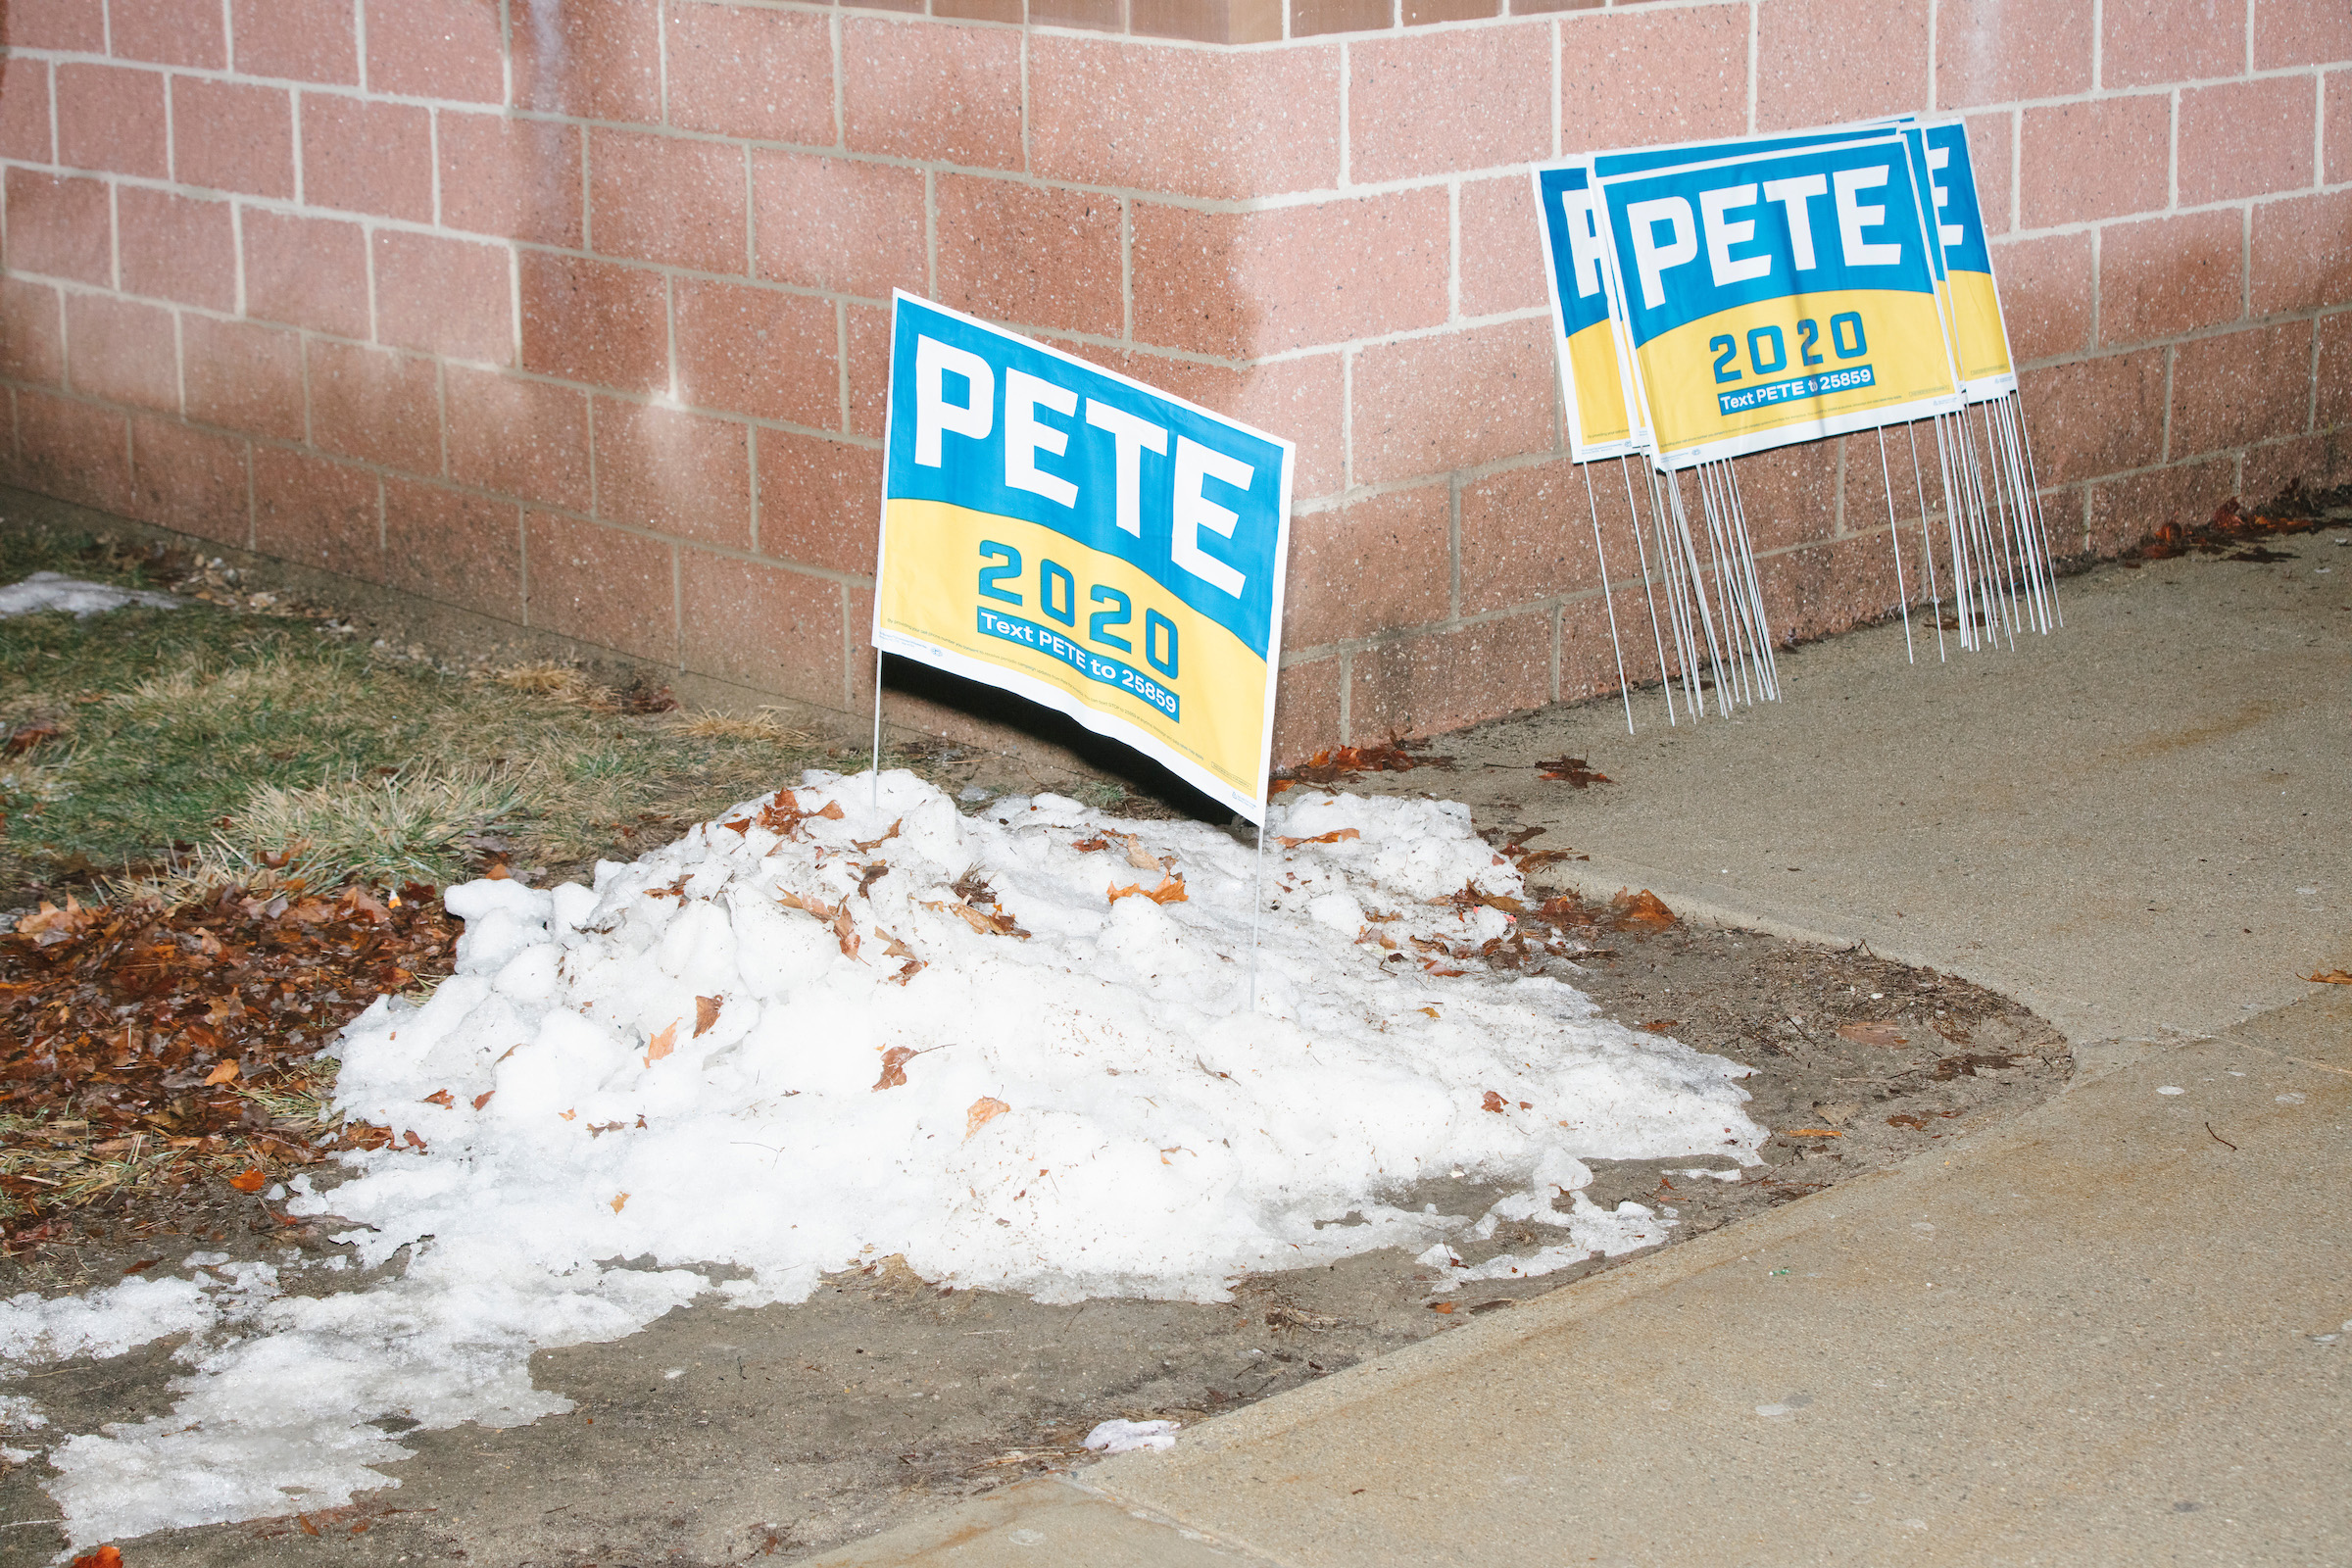 Campaign signs for Democratic presidential candidate and former South Bend, Ind., mayor Pete Buttigieg stand outside Exeter High School before a campaign rally in Exeter, N.H., on Feb. 10, 2020.